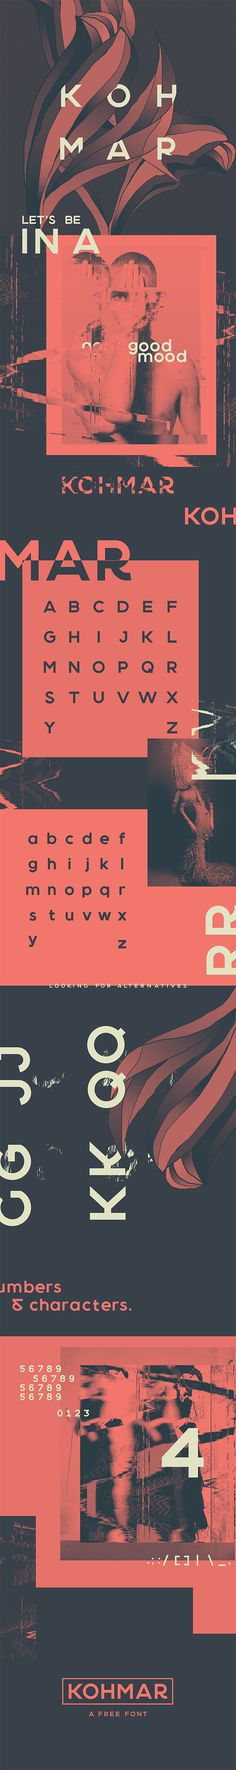 KOHMAR FONT on Behance